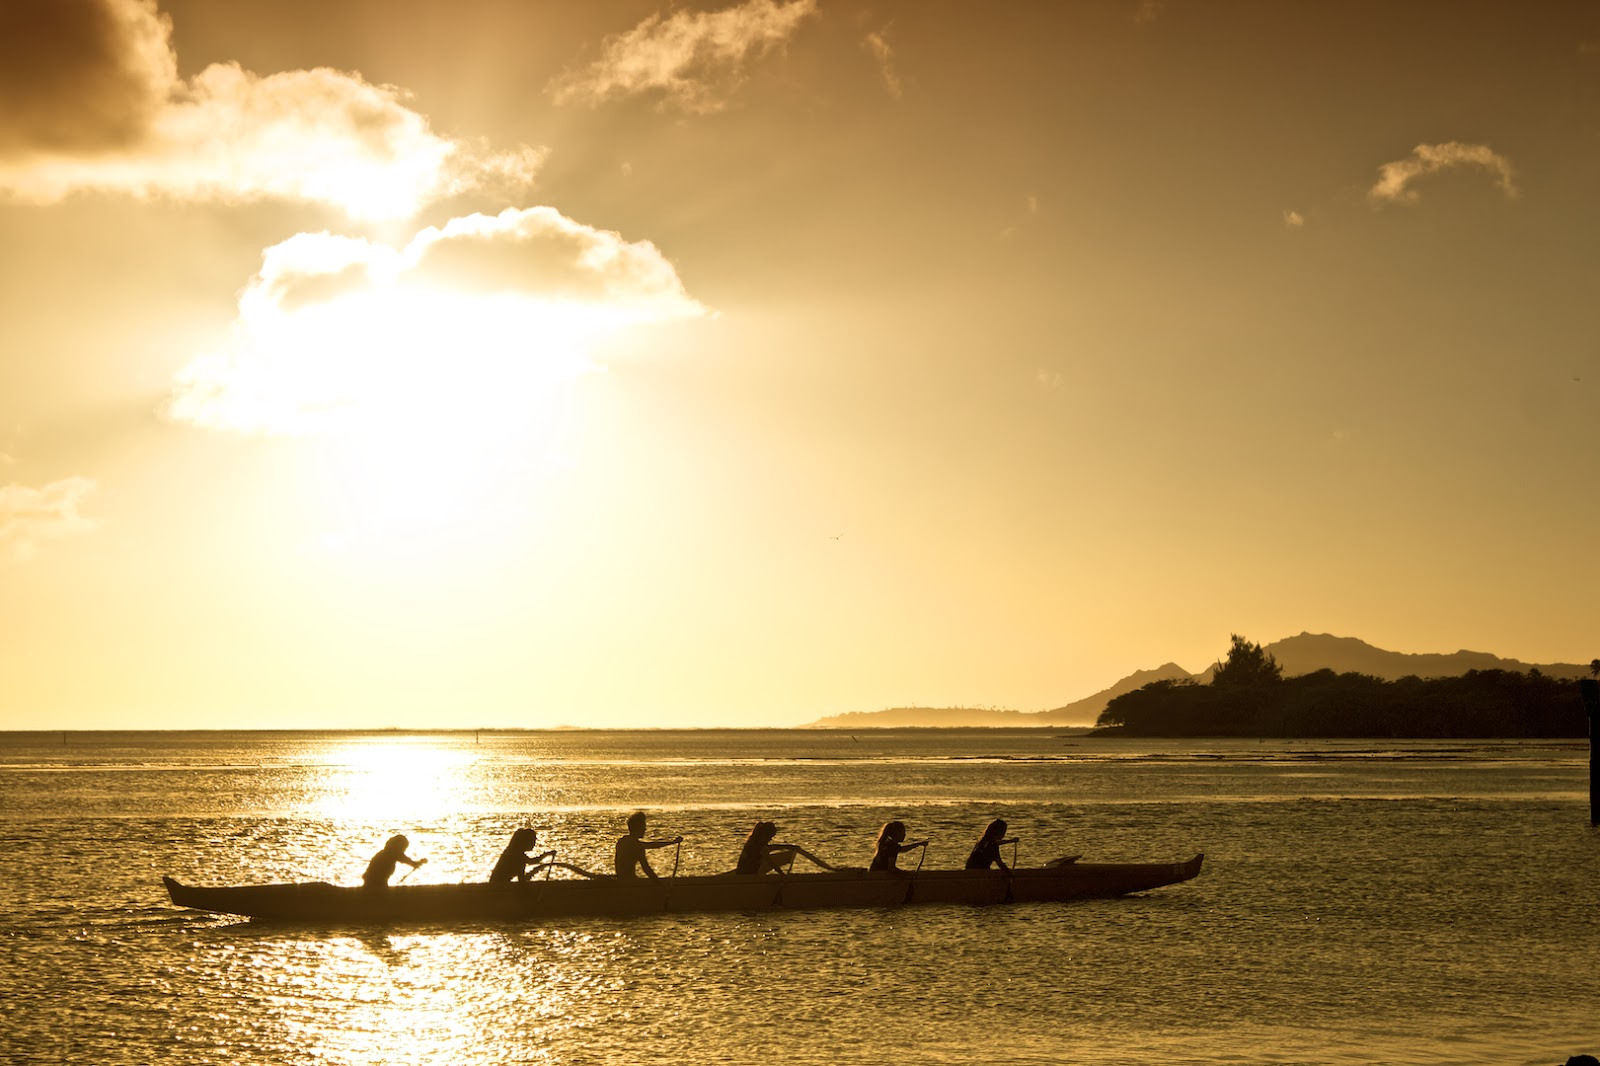 Outrigger Canoe paddlers practicing at sunset, O'ahu